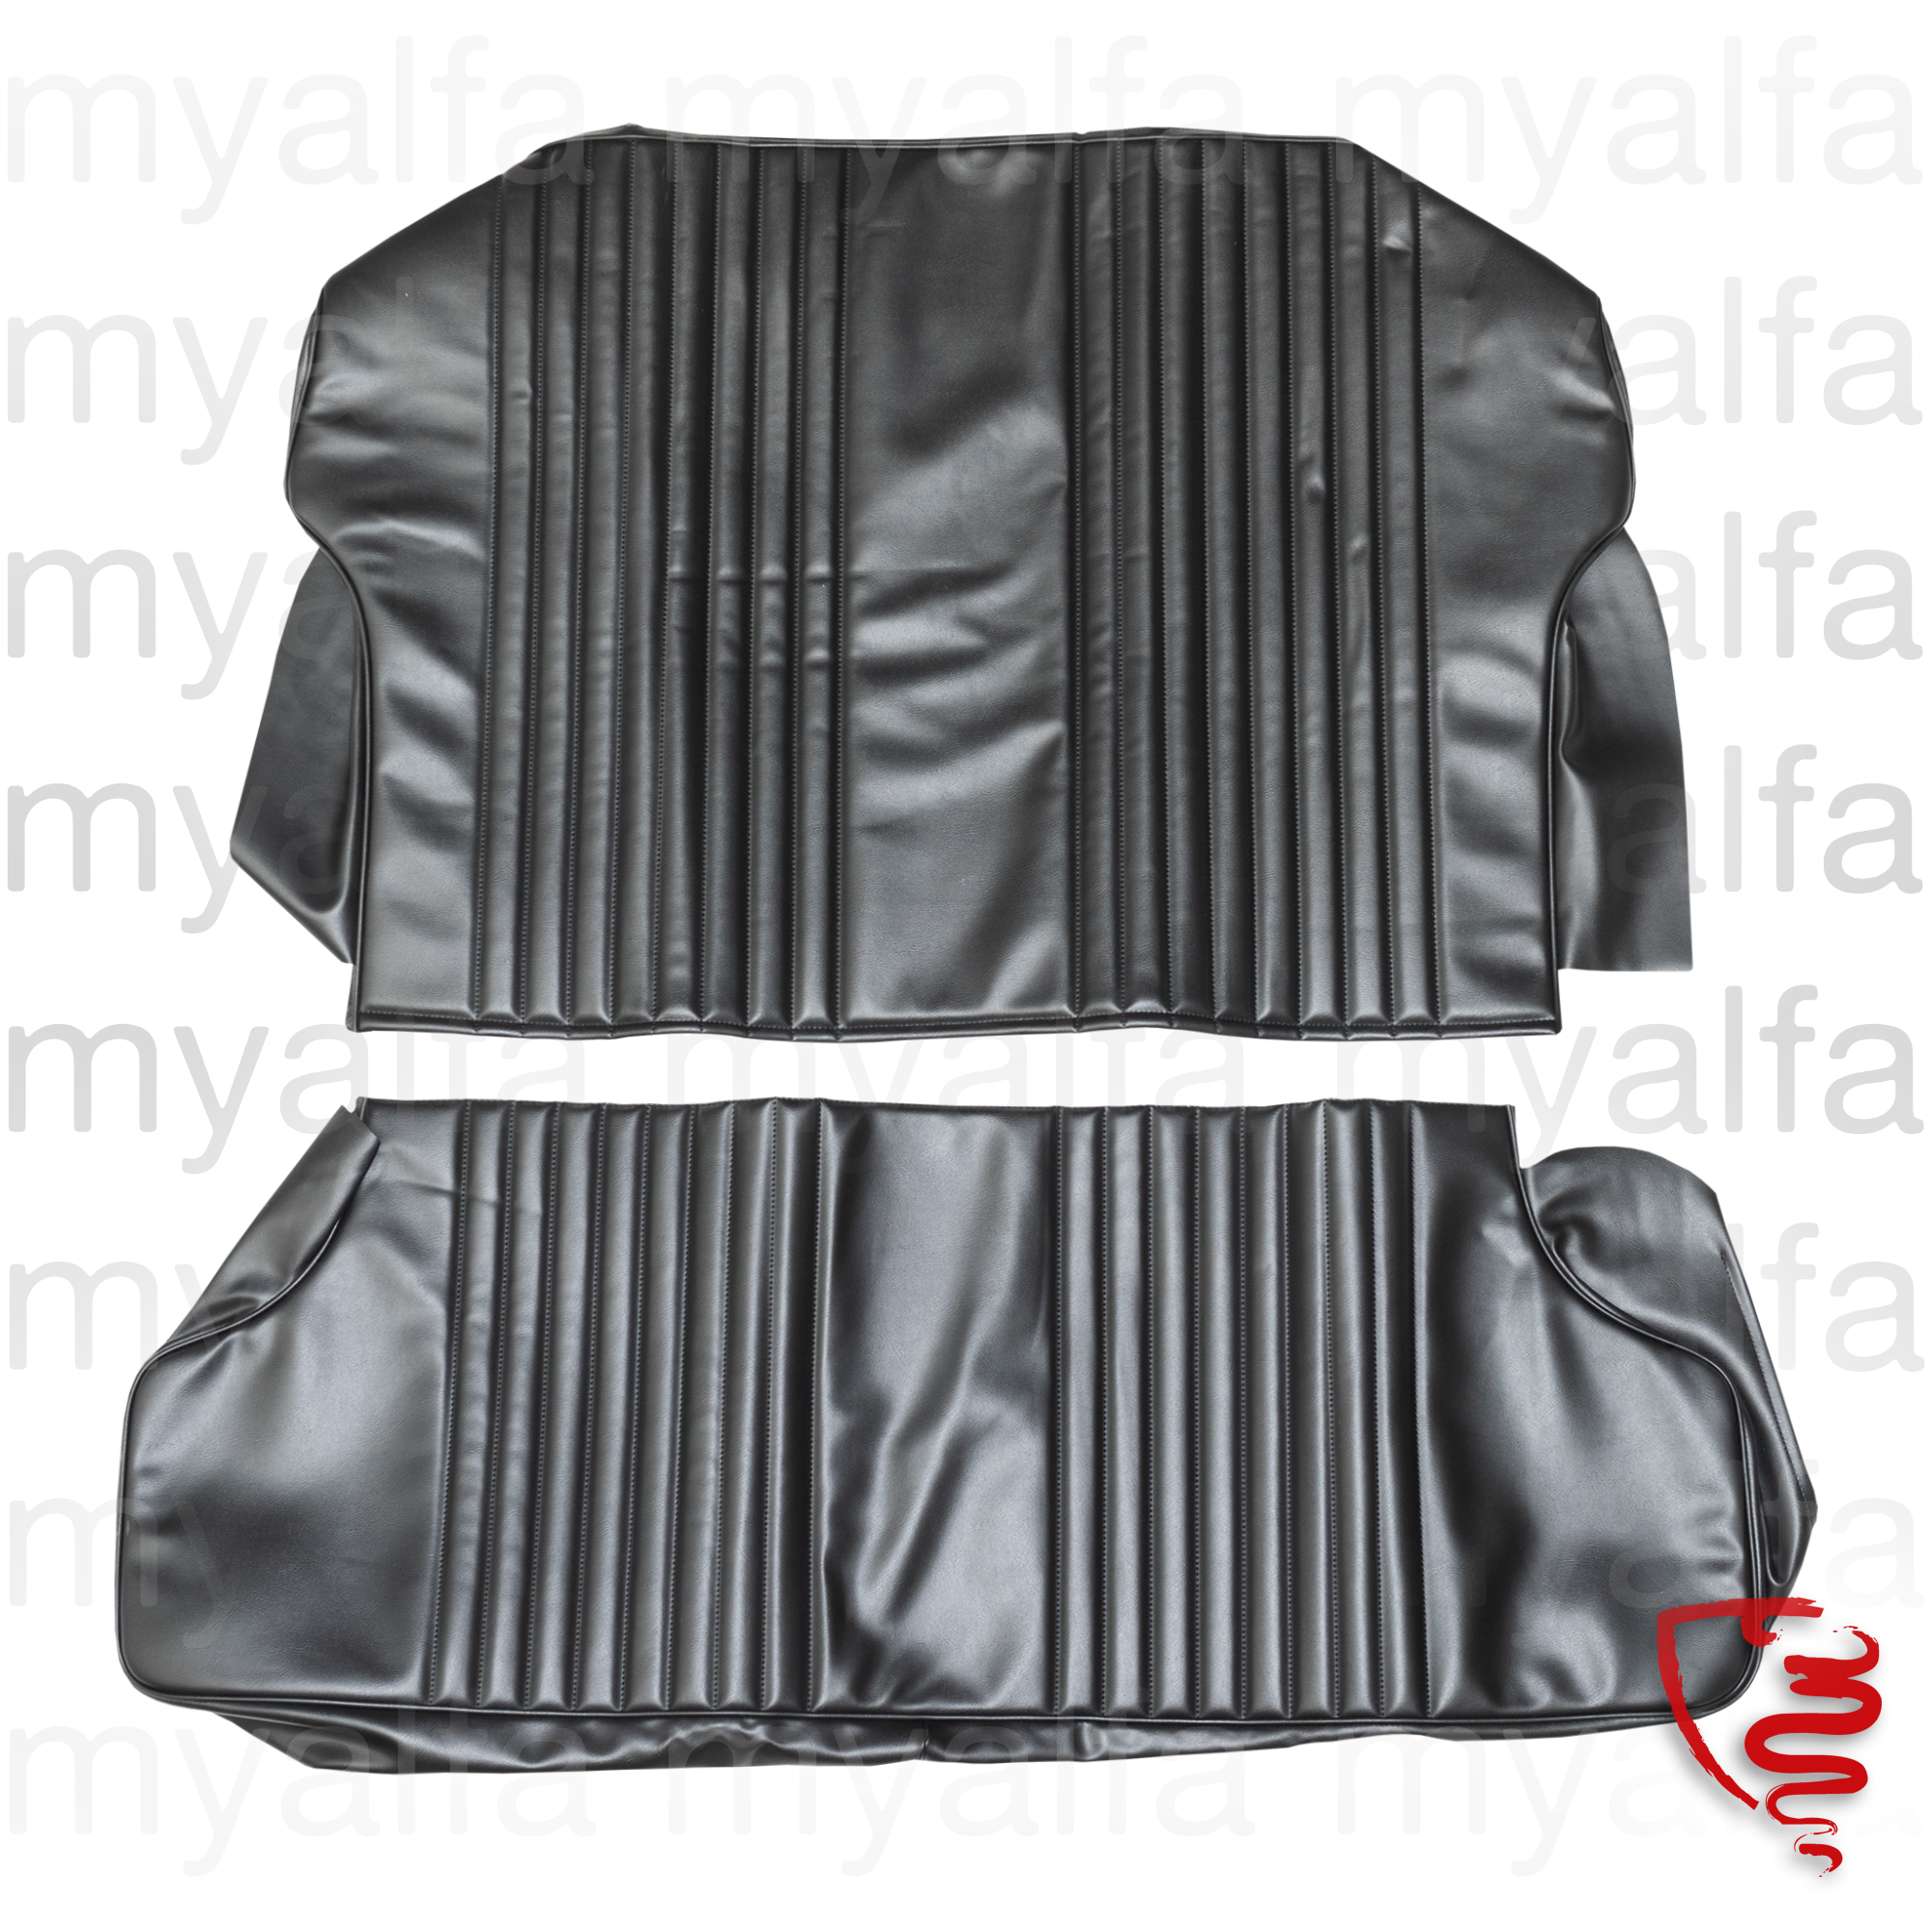 Jg. covers rear seat GT Junior 1300/1600 - Black for 105/115, Coupe, Interior, Seats, Seat covers